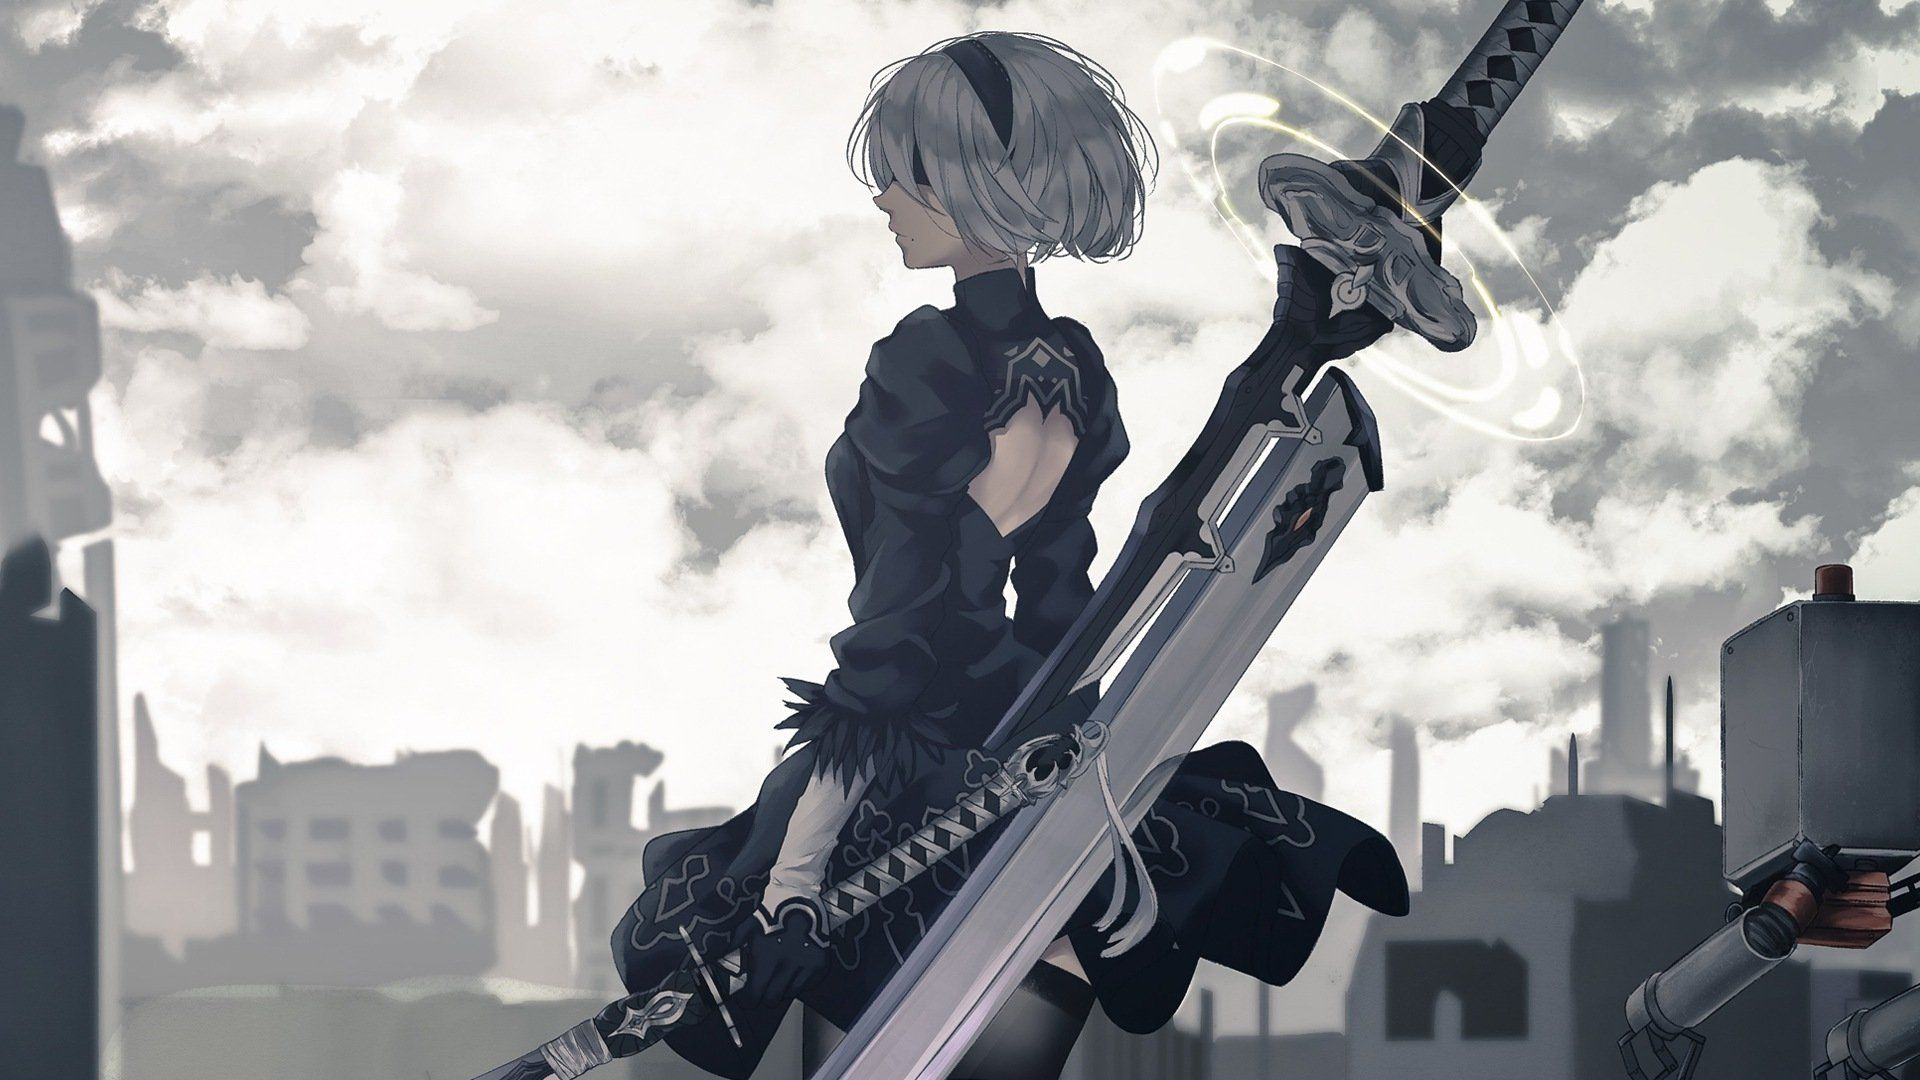 Nier Automata Wallpapers Top Free Nier Automata Backgrounds Wallpaperaccess